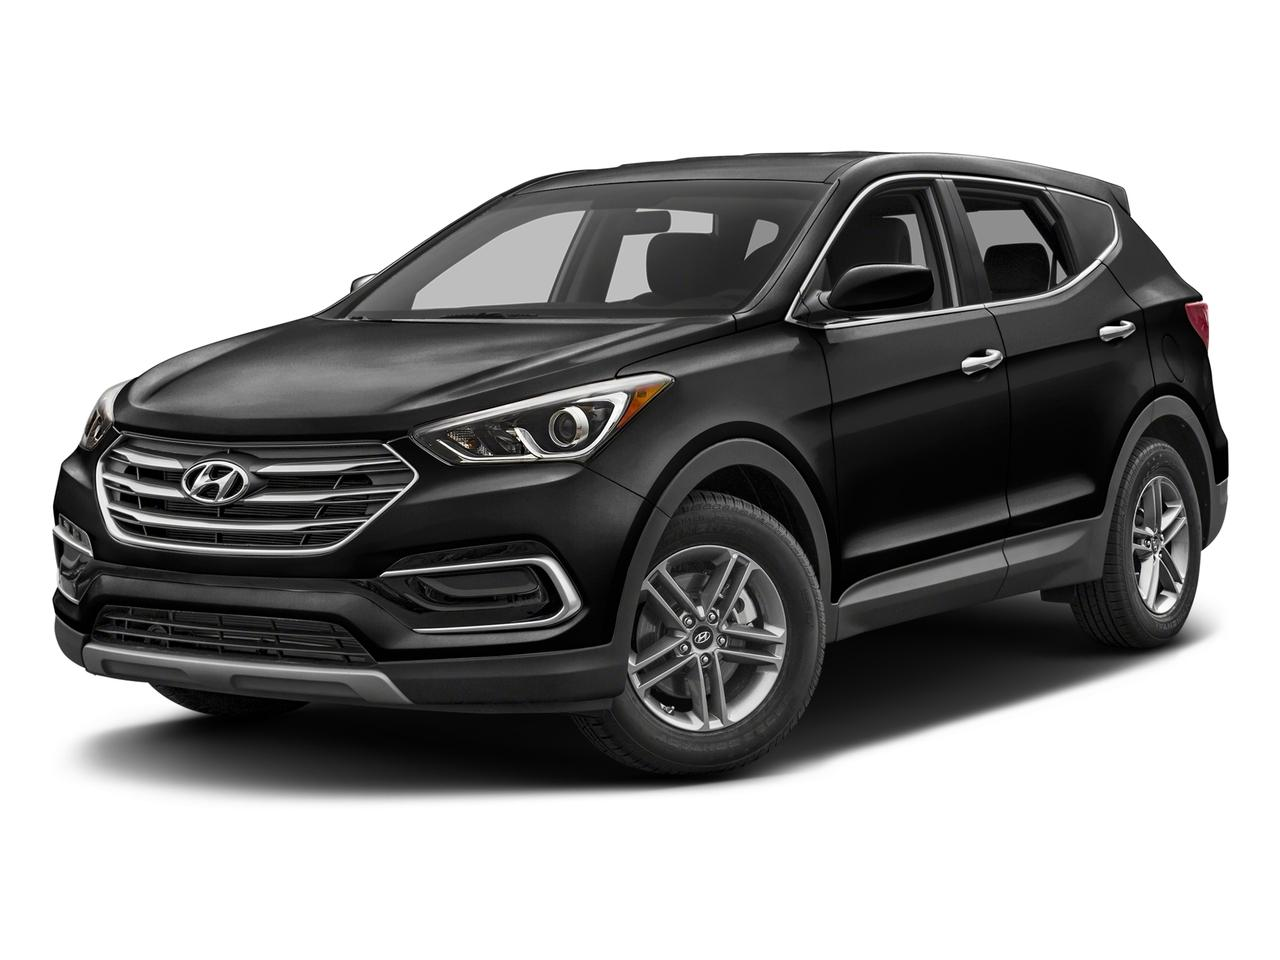 2017 Hyundai Santa Fe Sport Vehicle Photo in Killeen, TX 76541